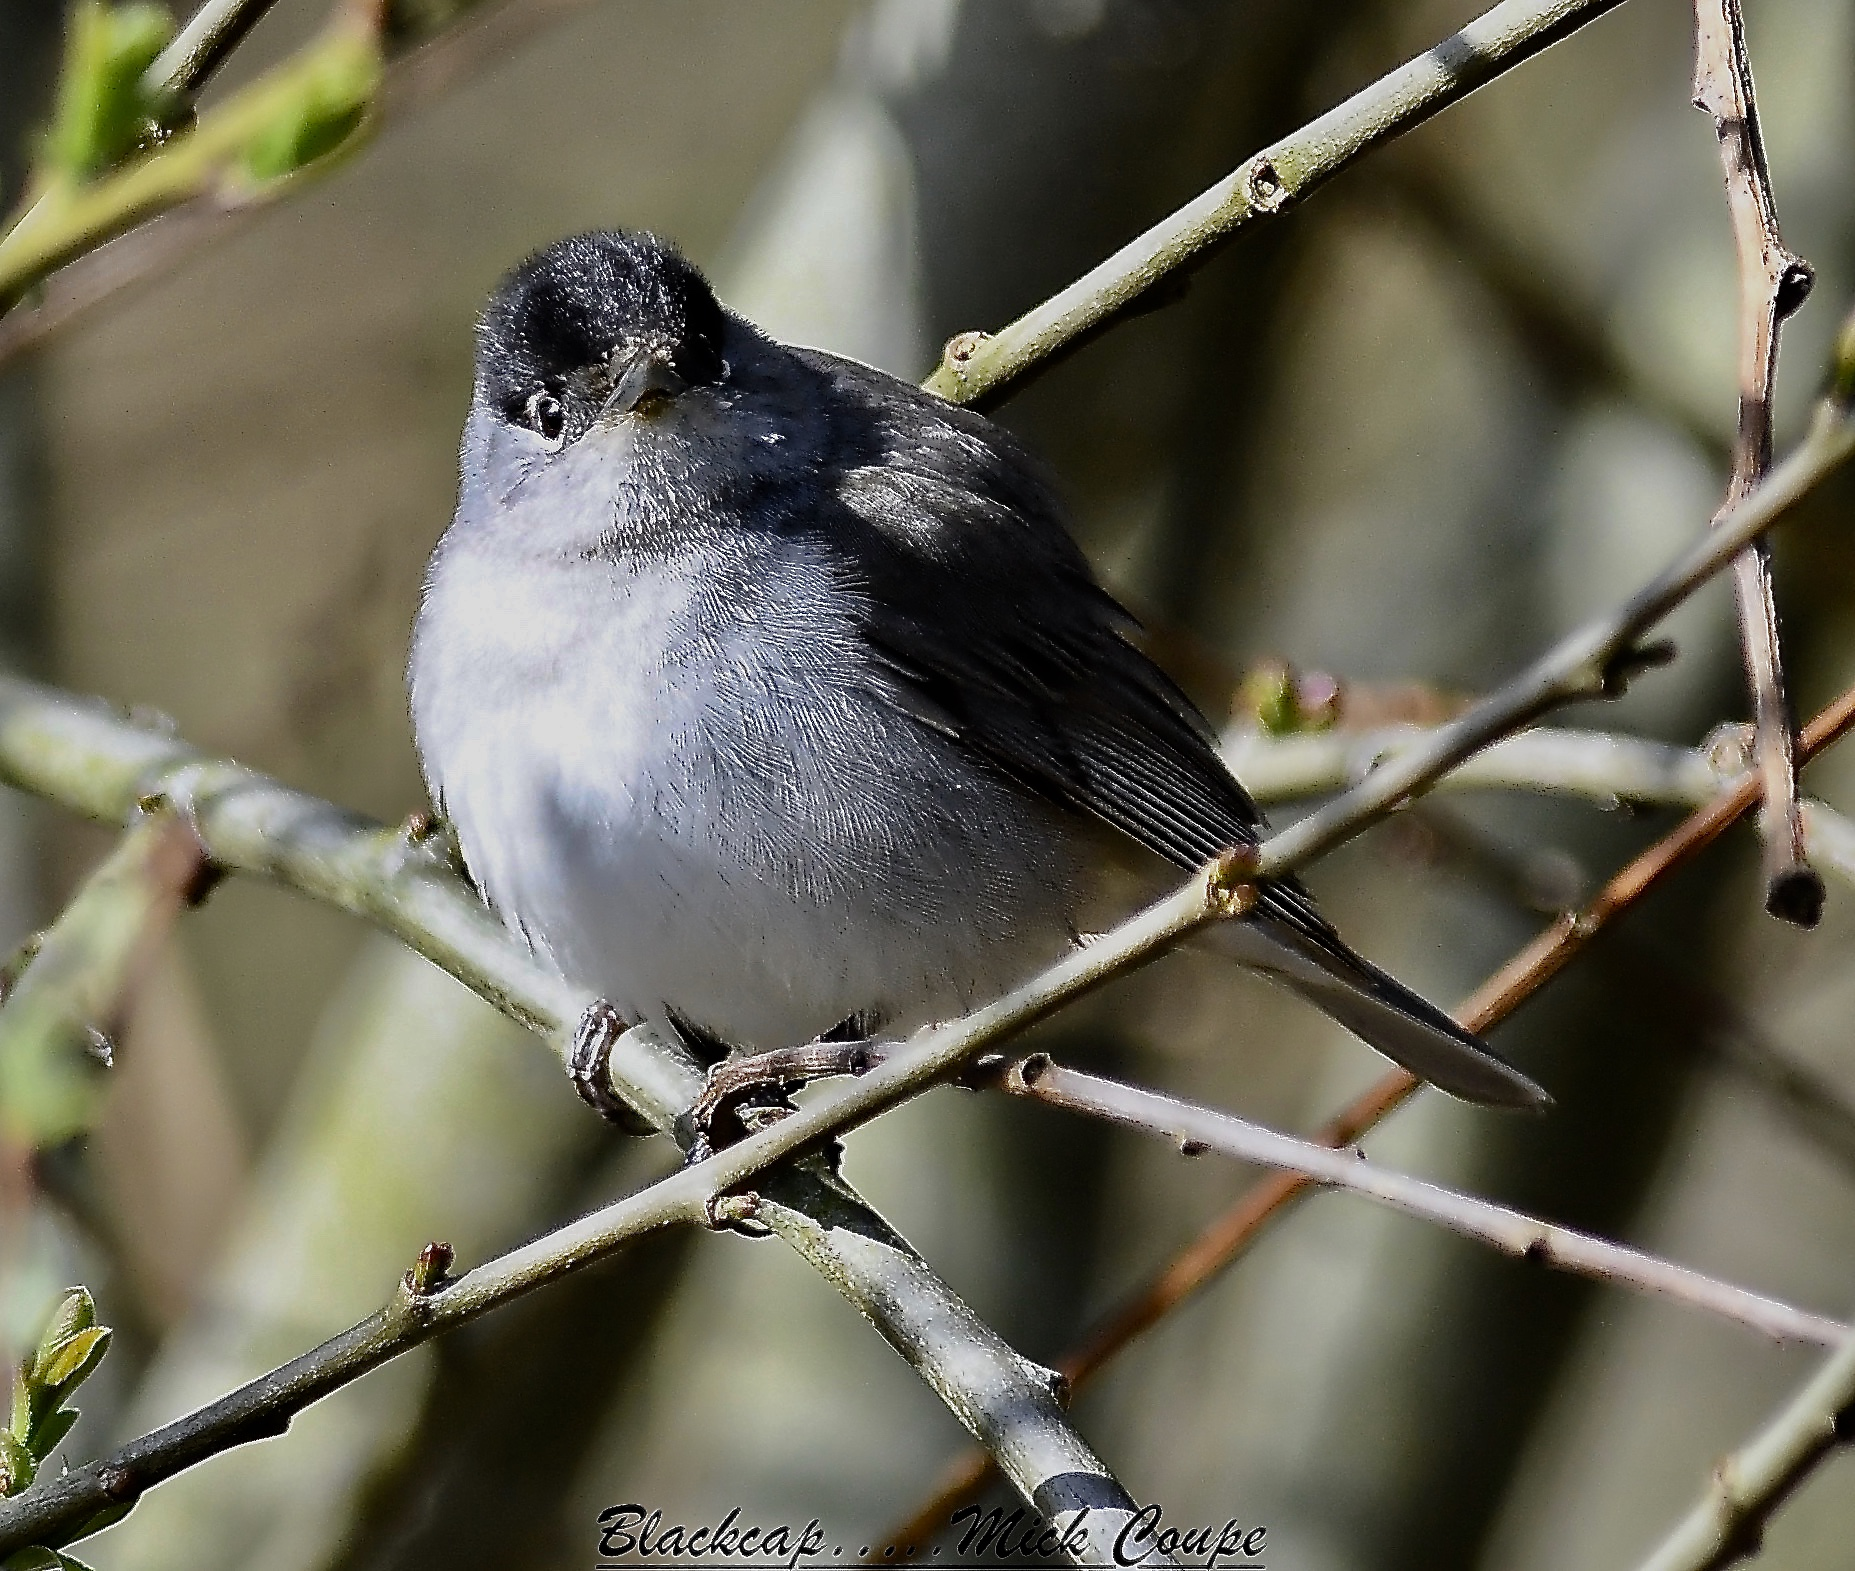 Blackcap (Michael Coupe)